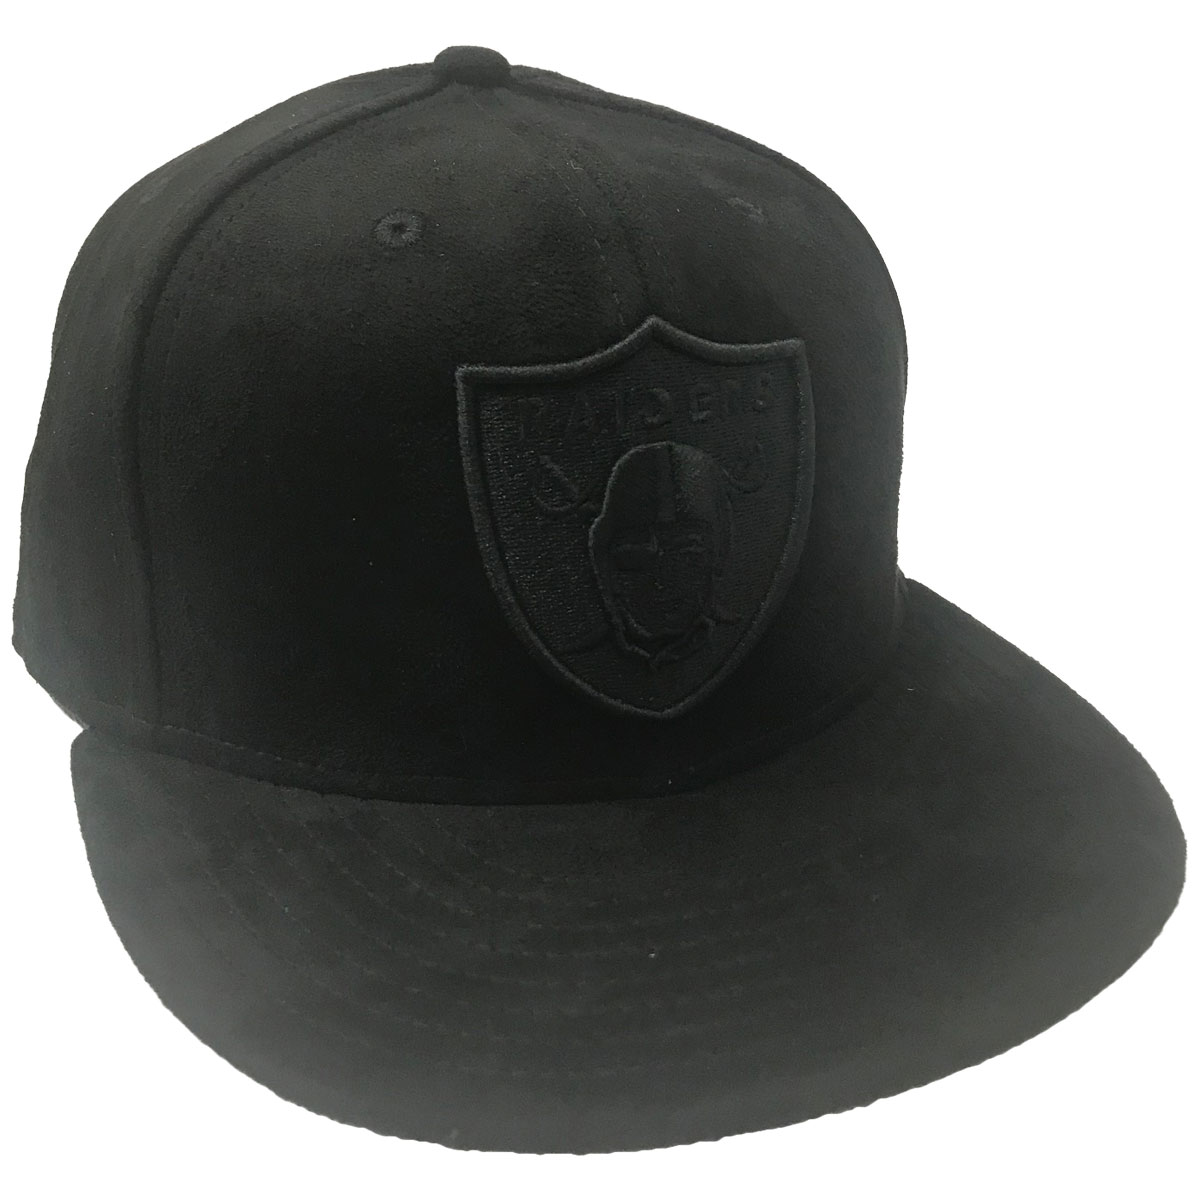 Details about New Era NFL Oakland Raiders Suede Tonal 59Fifty Fitted Baseball  Cap rrp£30 ac3c6392eae